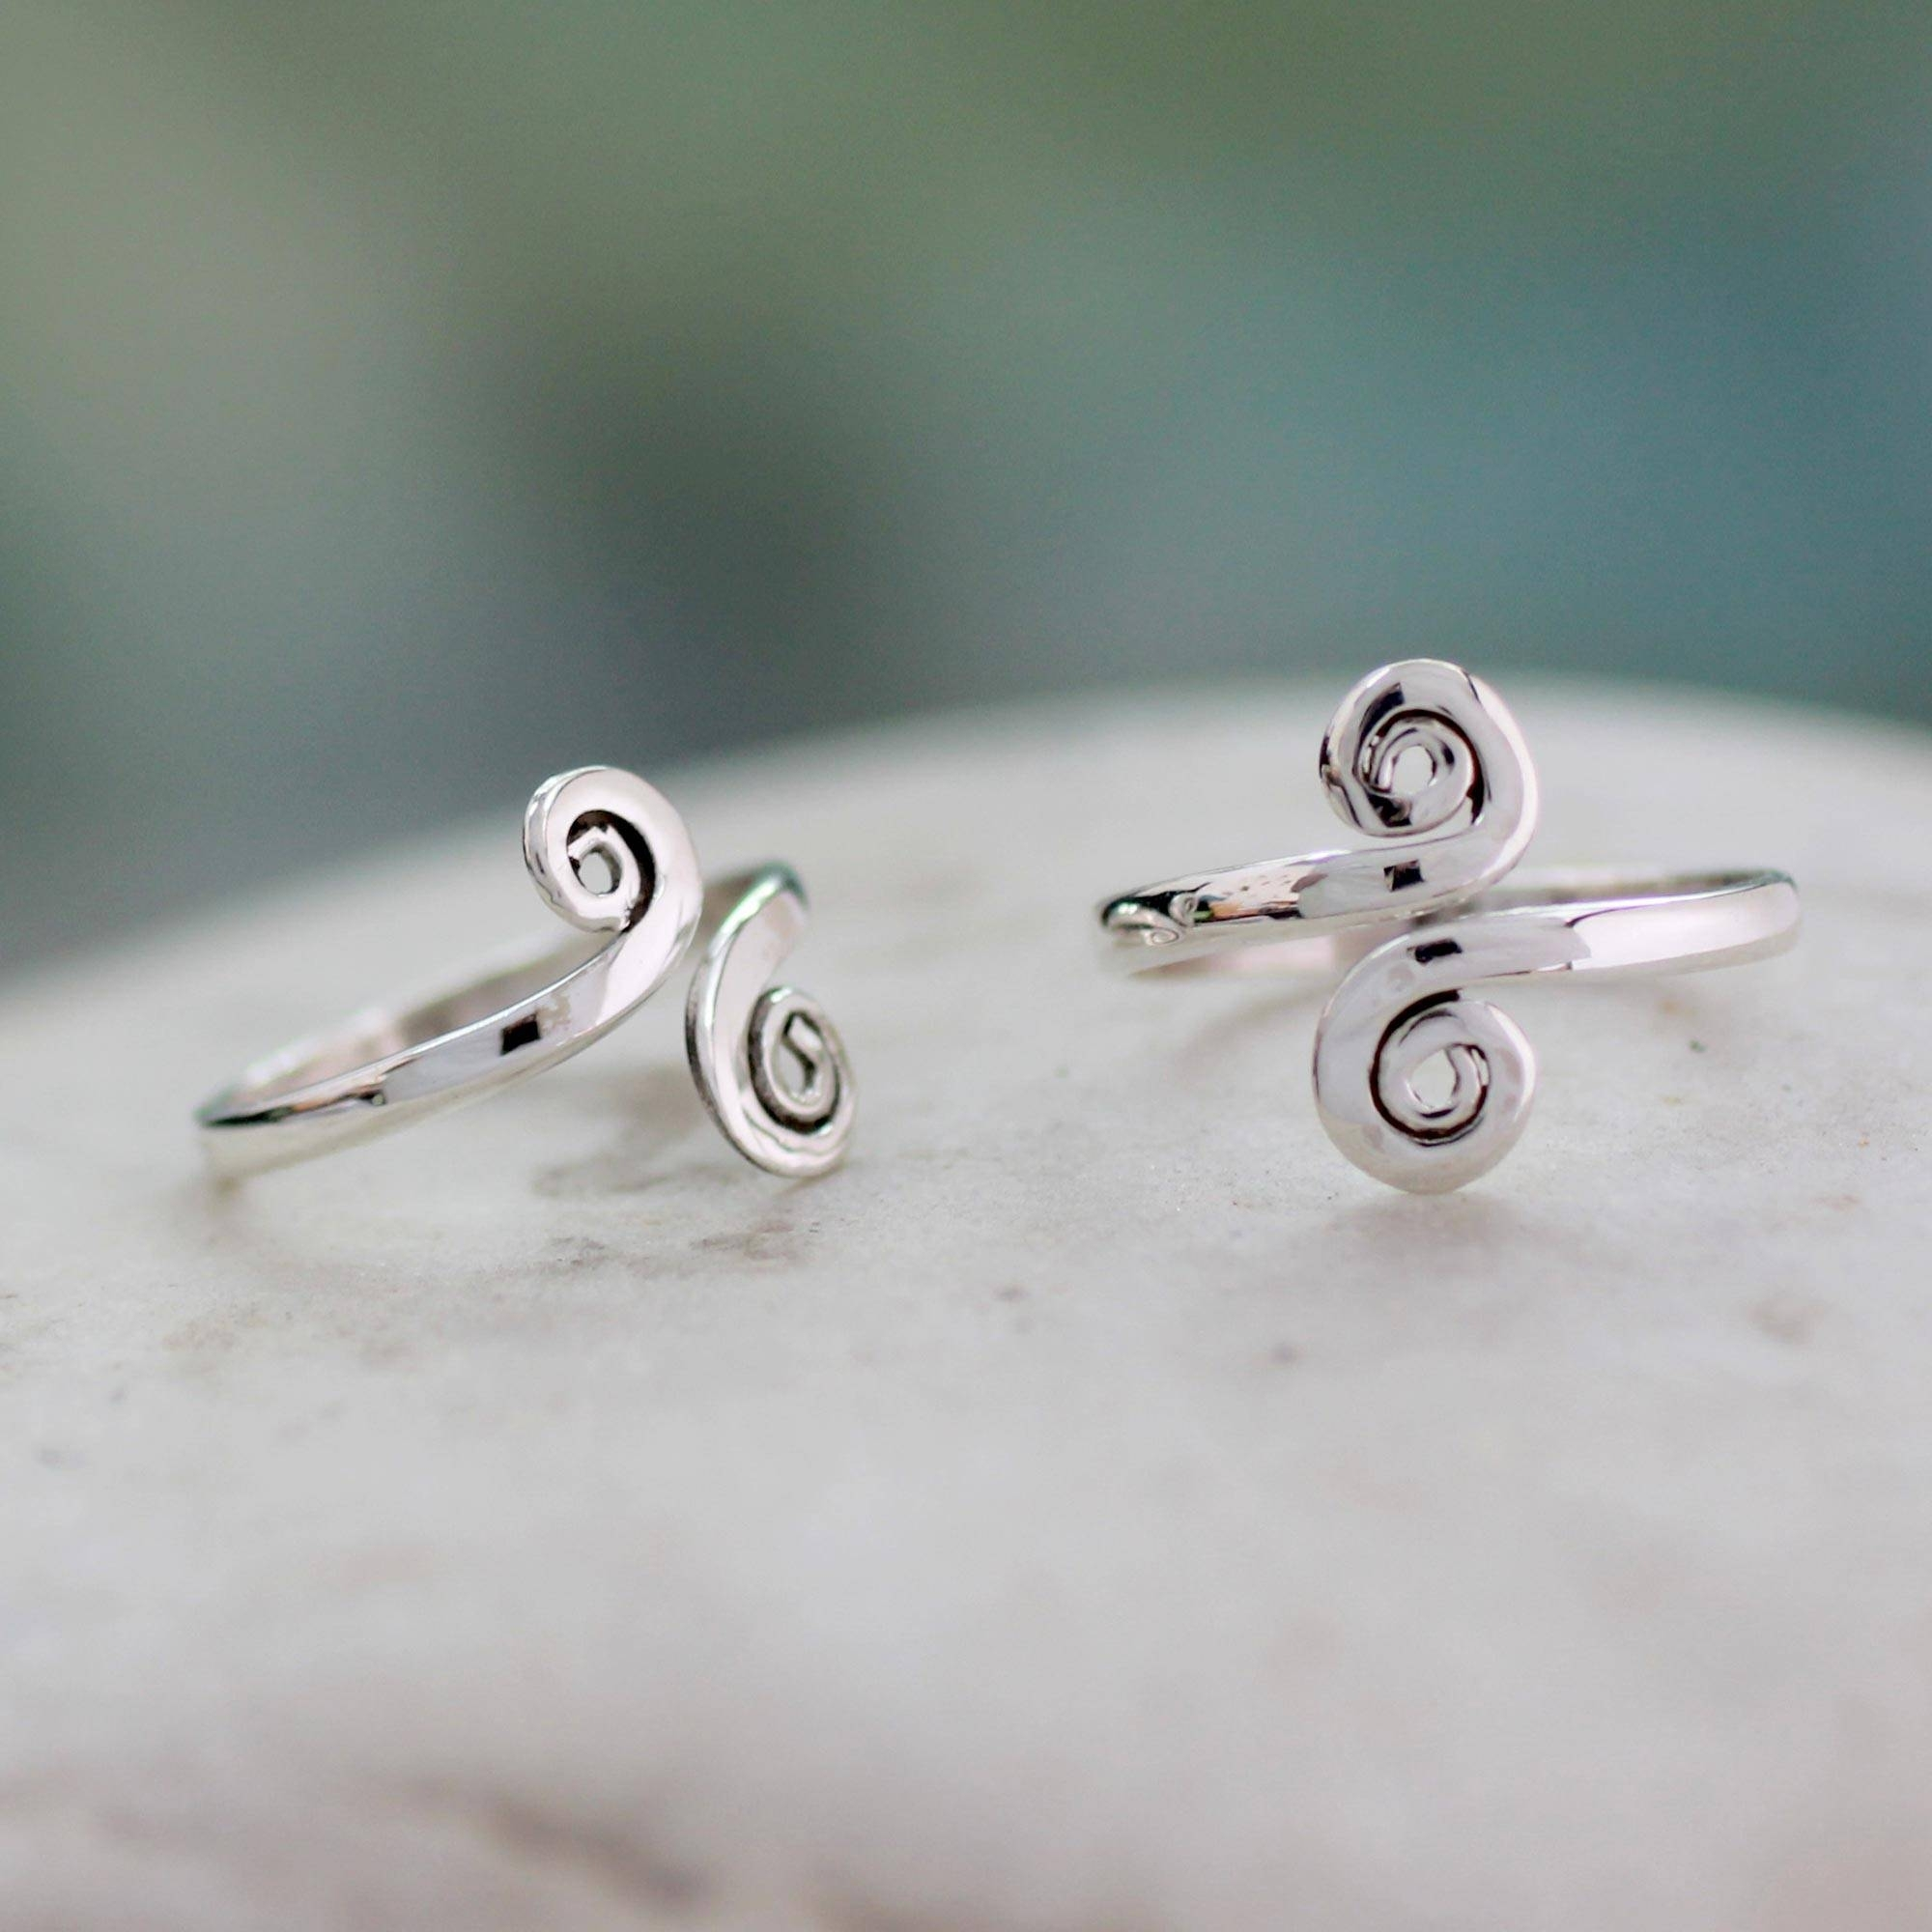 Handcrafted Sterling Silver Toe Rings From India (Pair Intended For Latest Indian Toe Rings (View 5 of 15)